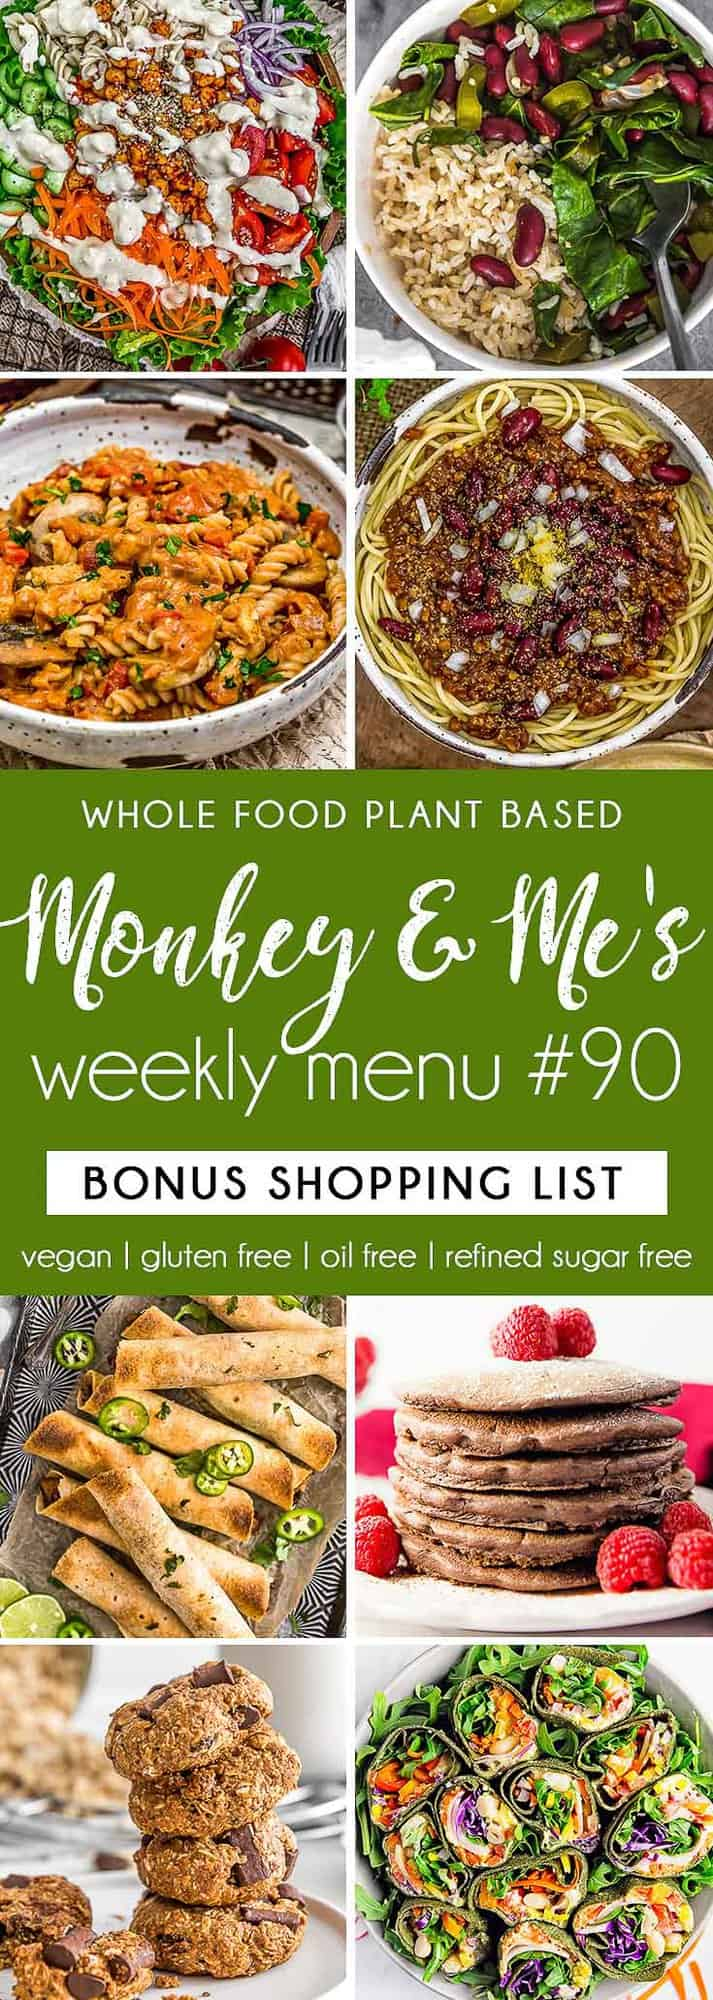 Monkey and Me's Menu 90 featuring 8 recipes